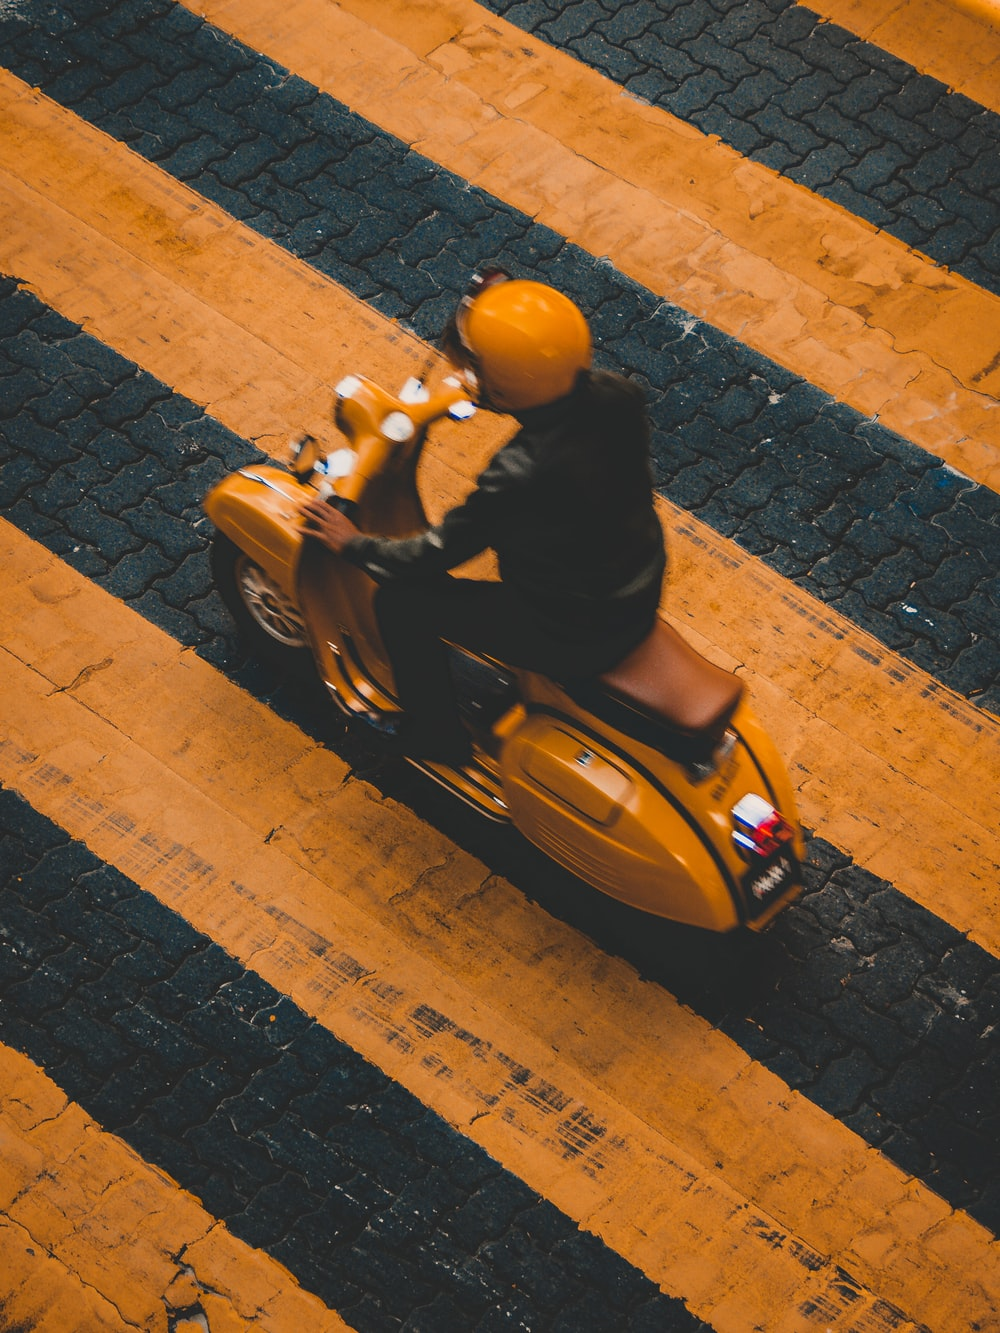 100 Vespa Pictures Download Free Images On Unsplash